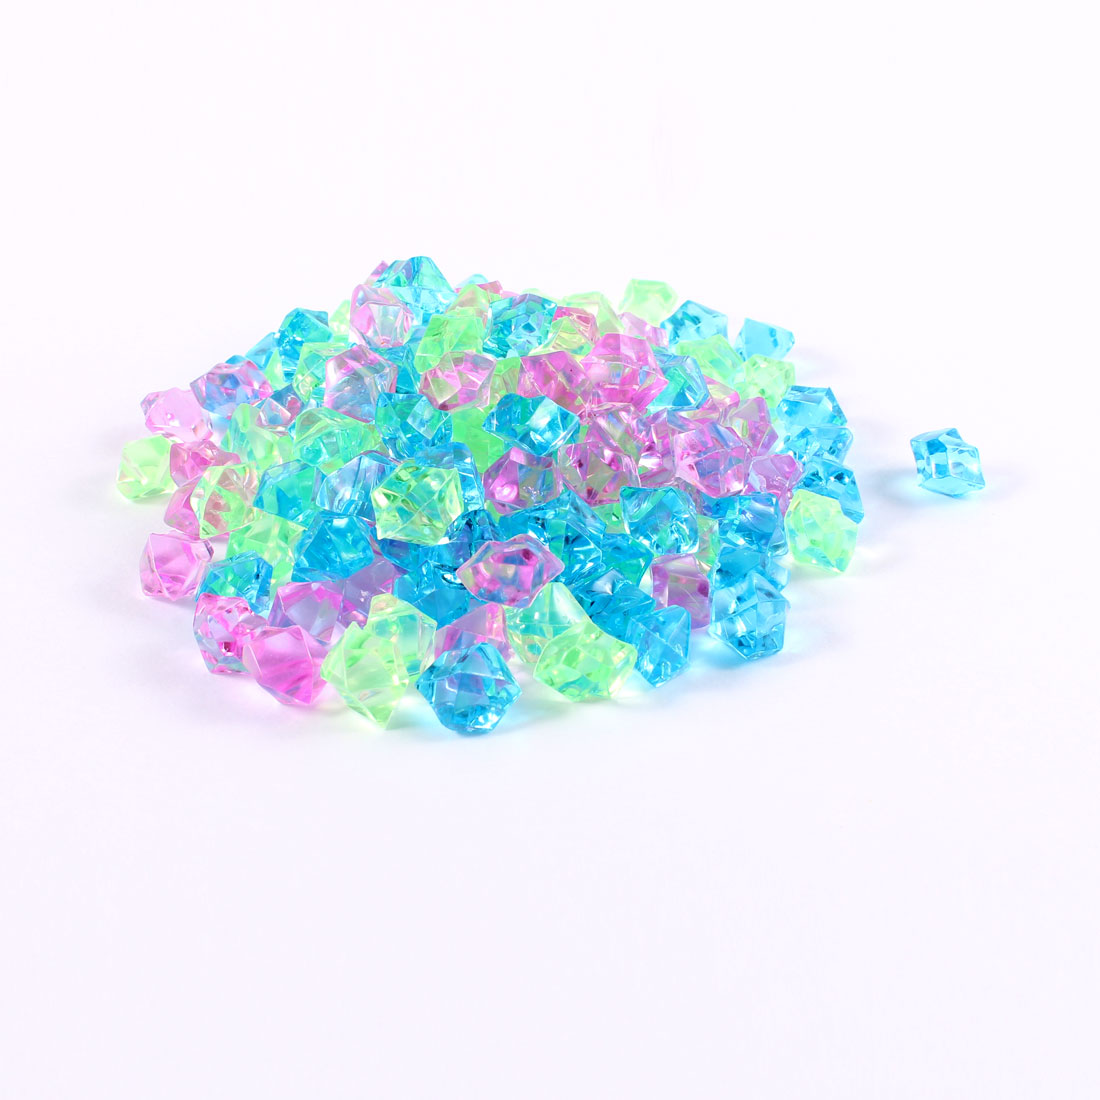 150 Pcs Blue Green Pink Irregular Faceted Crystal Stones Ornament for Fish Tank